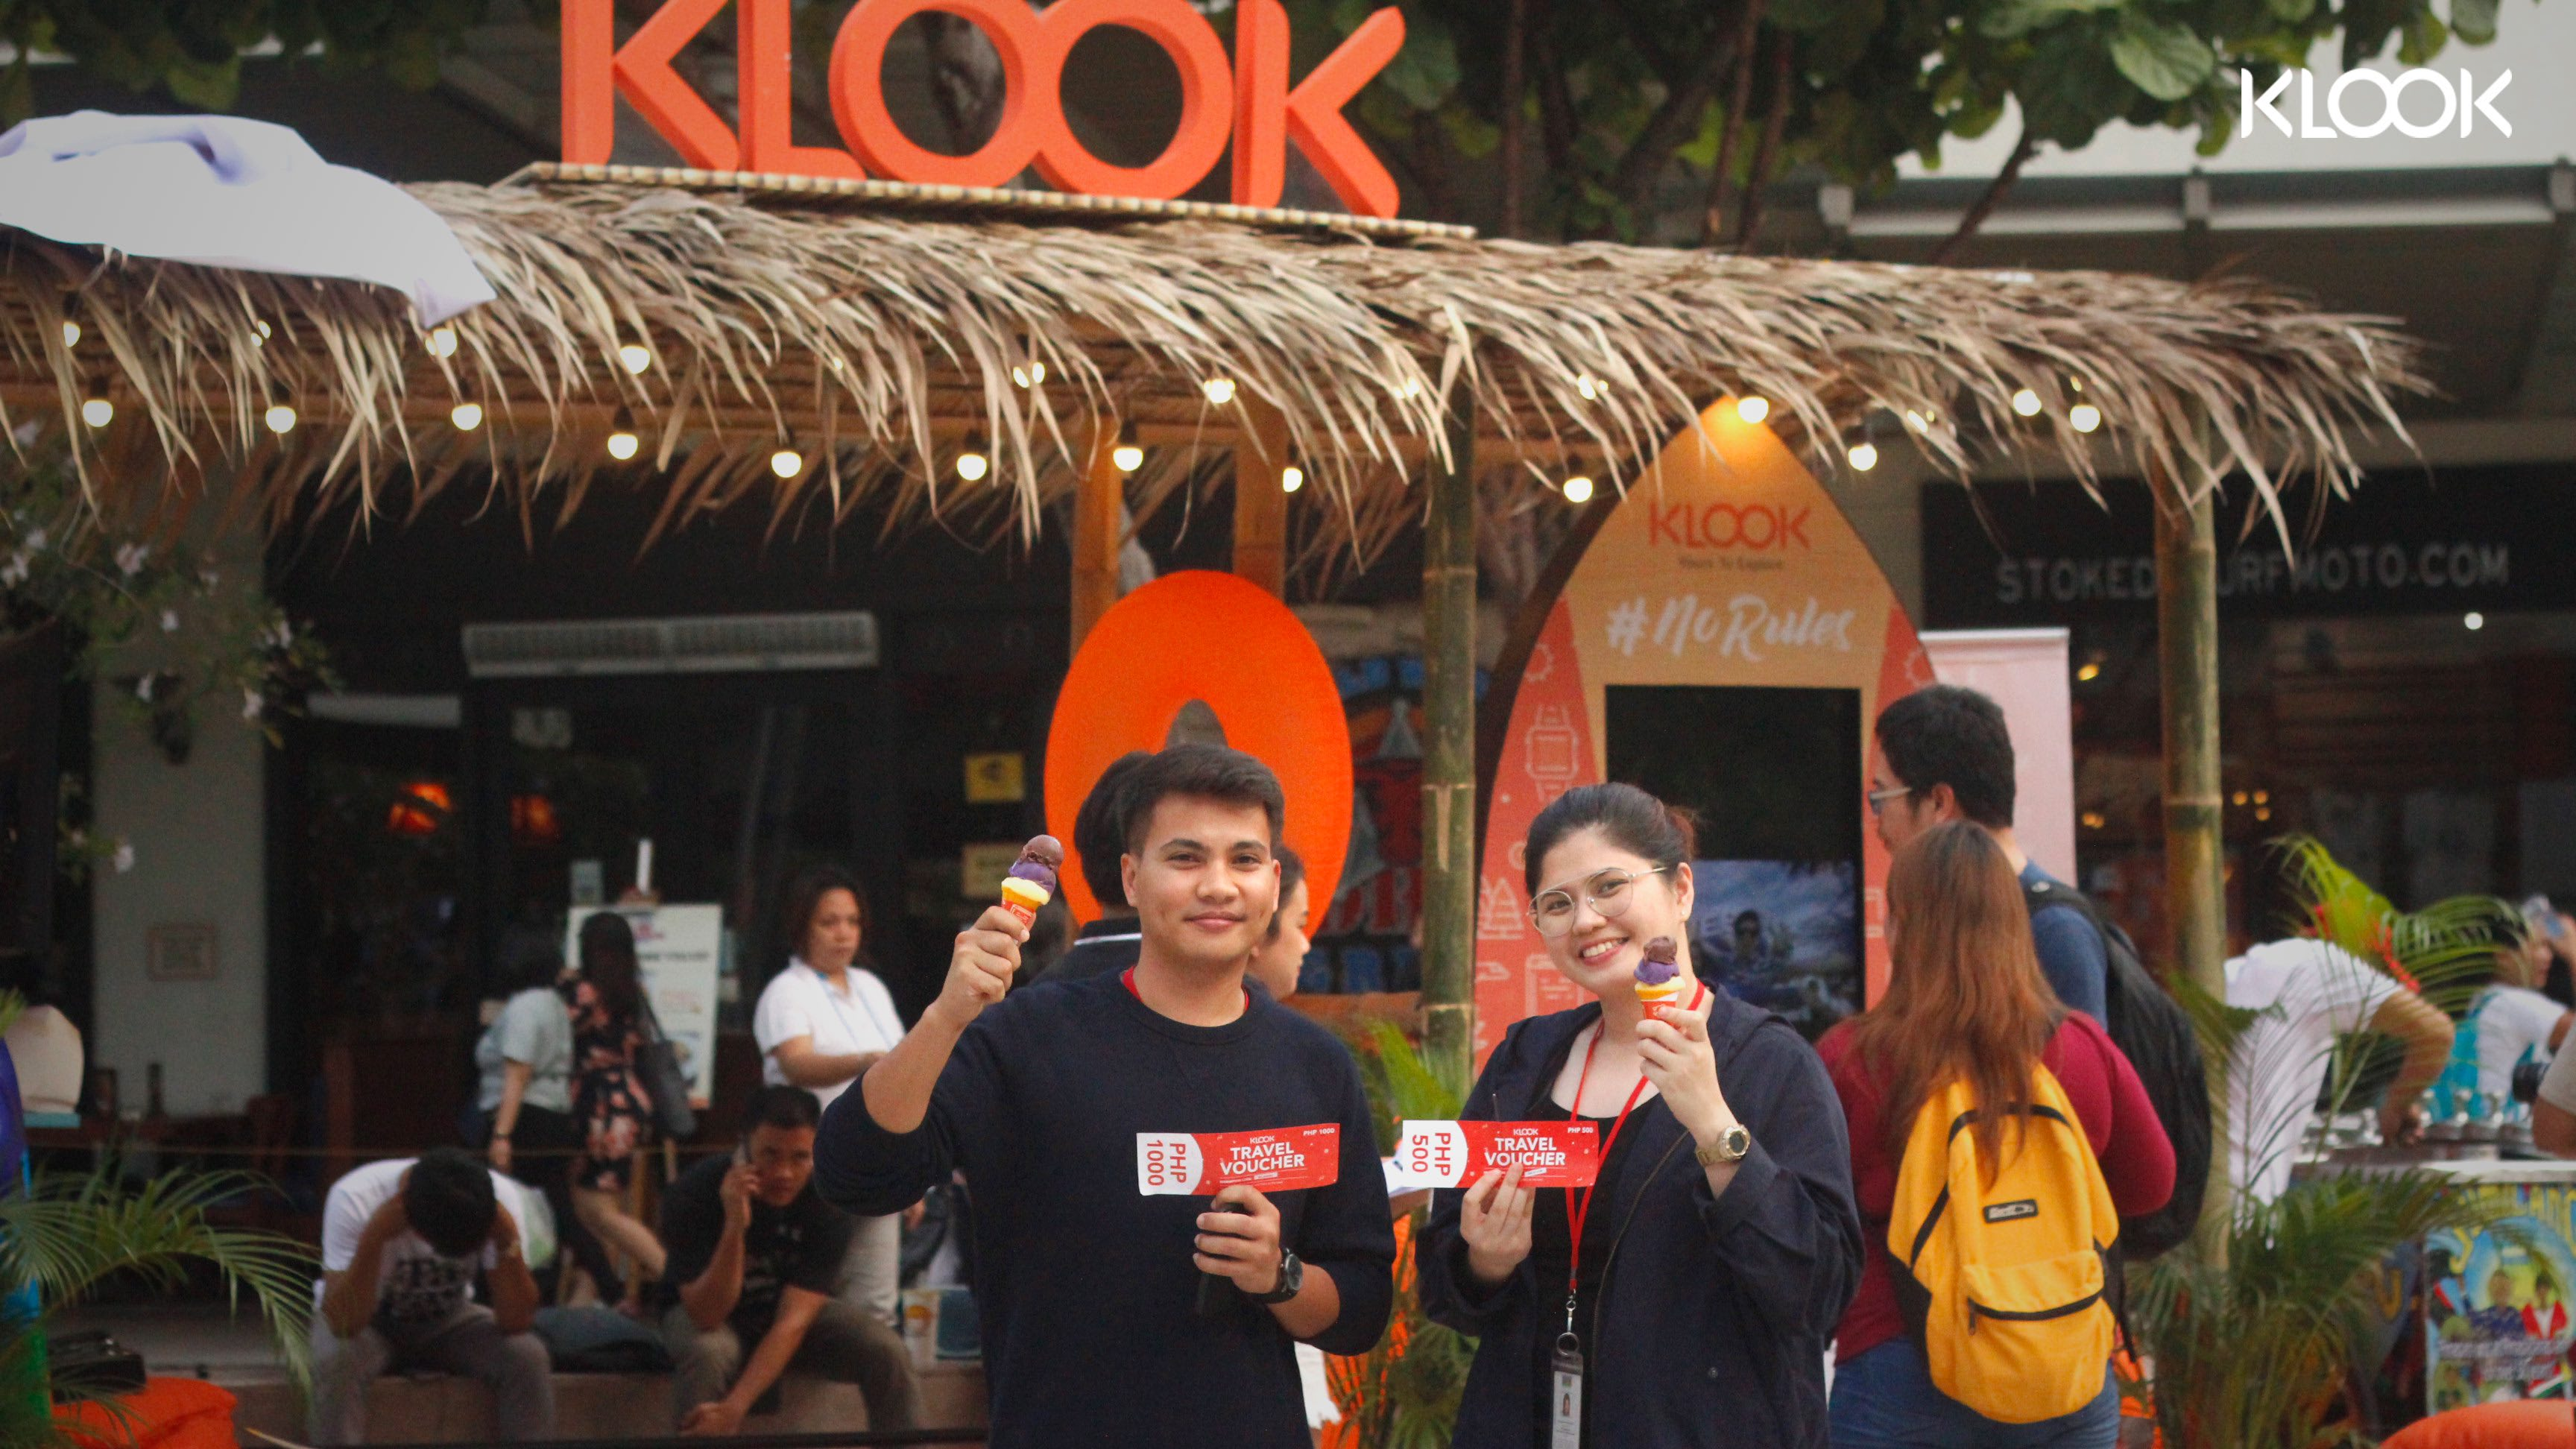 klook beach hut bgc travel vouchers